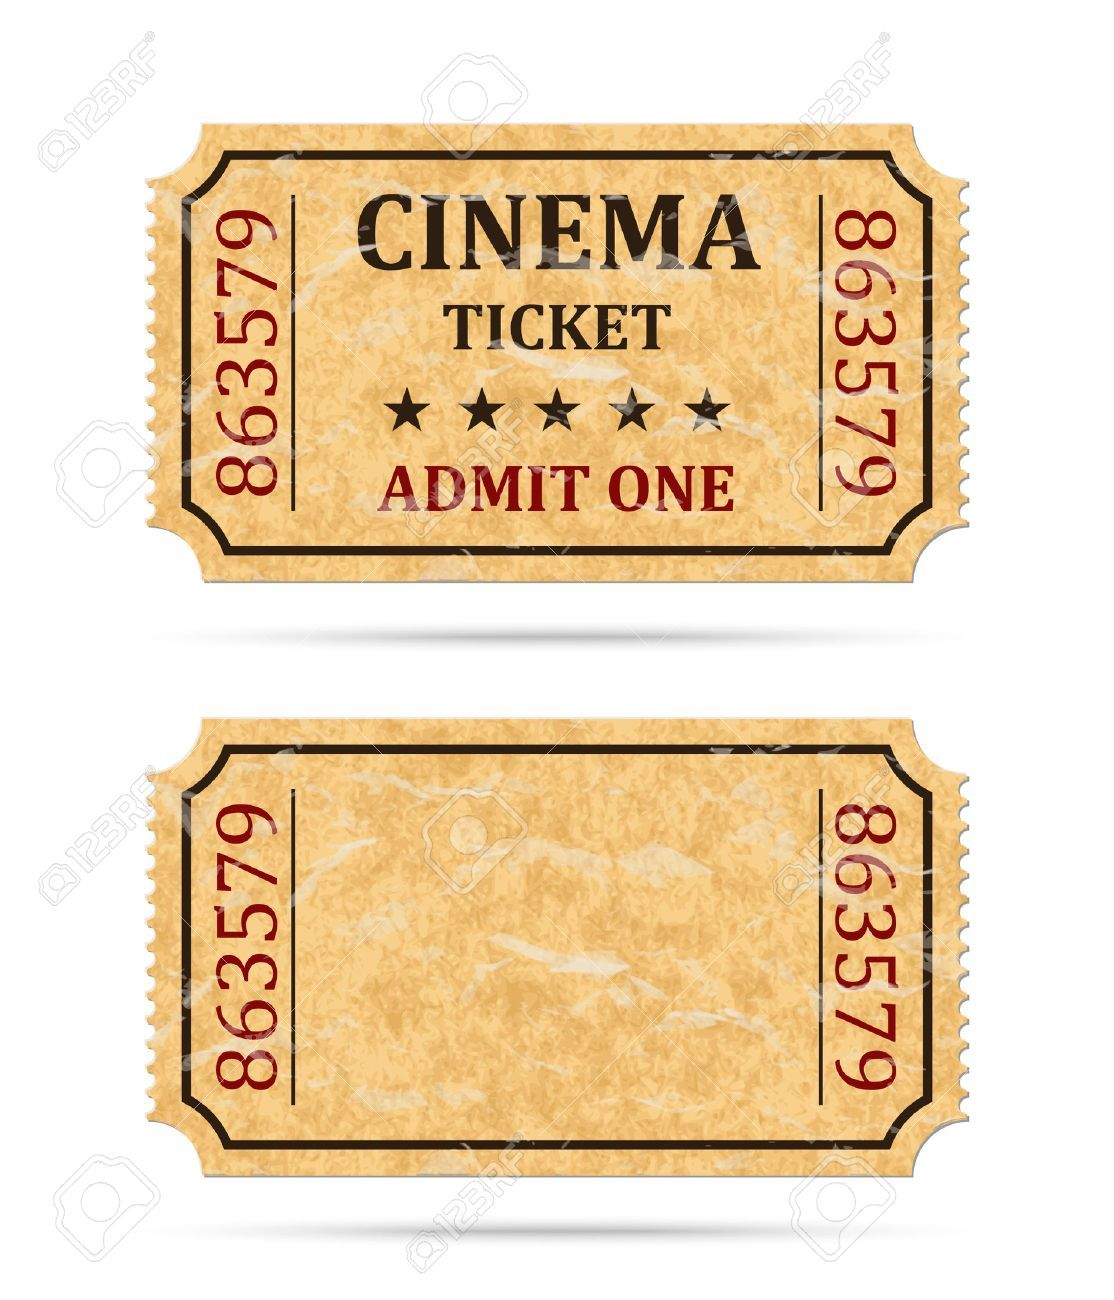 Retro Cinema Ticket And Empty Ticket Royalty Free Cliparts Vectors And Stock Illustration Image 41919873 Cinema Ticket Cinema Cinema Party